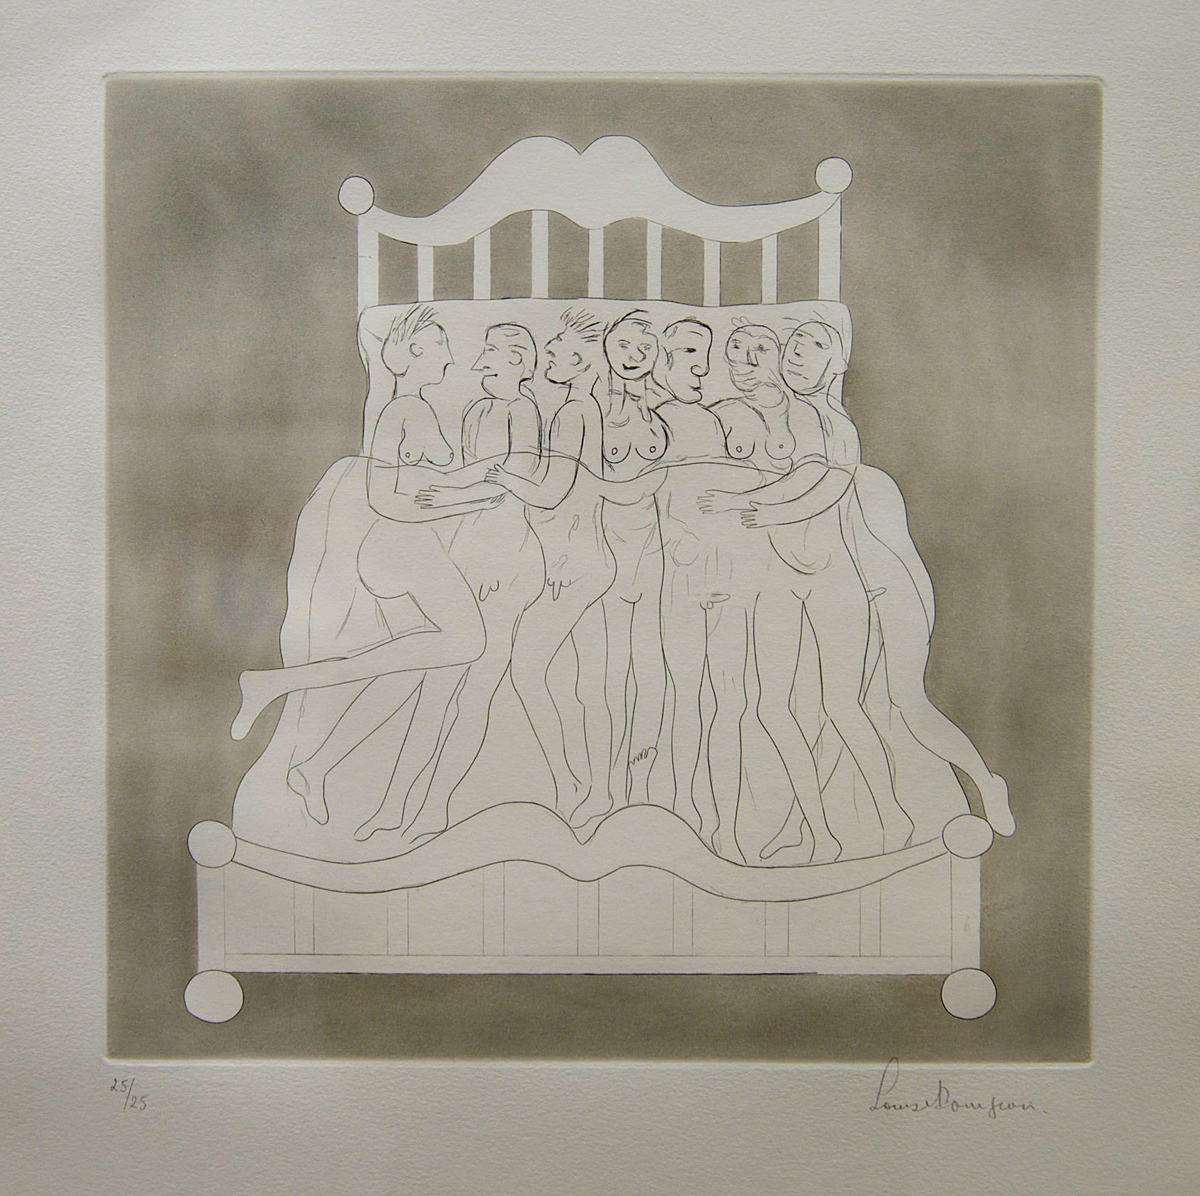 Bourgeois, Louise - Metomorphasis VI (Group Bed)